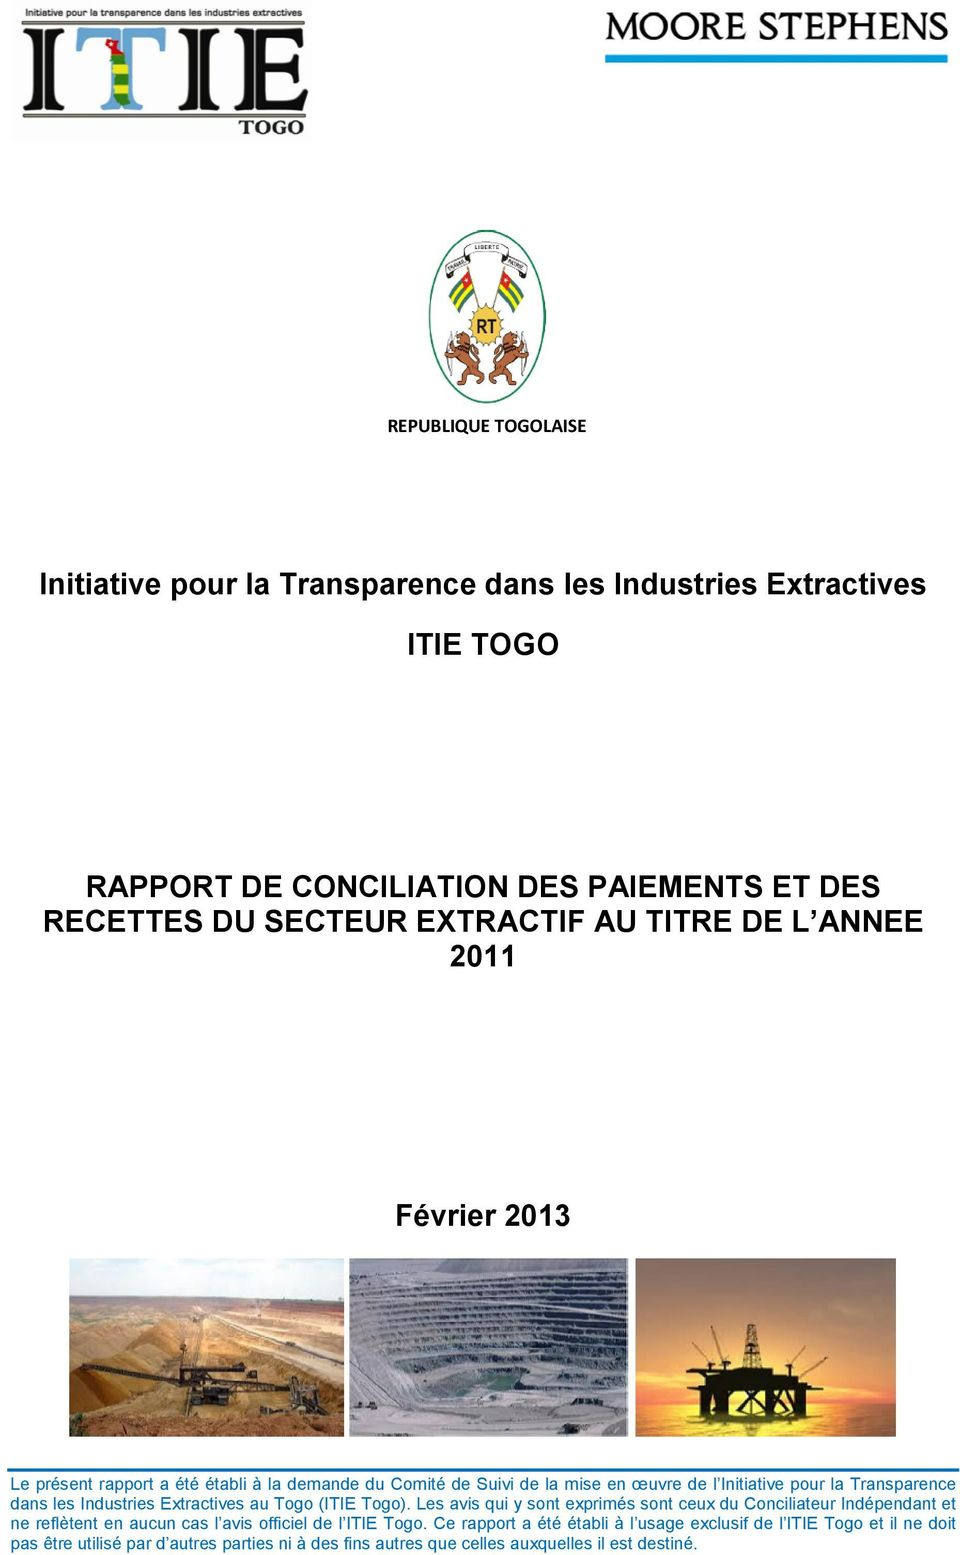 Industries Extractives au Togo (ITIE Togo).